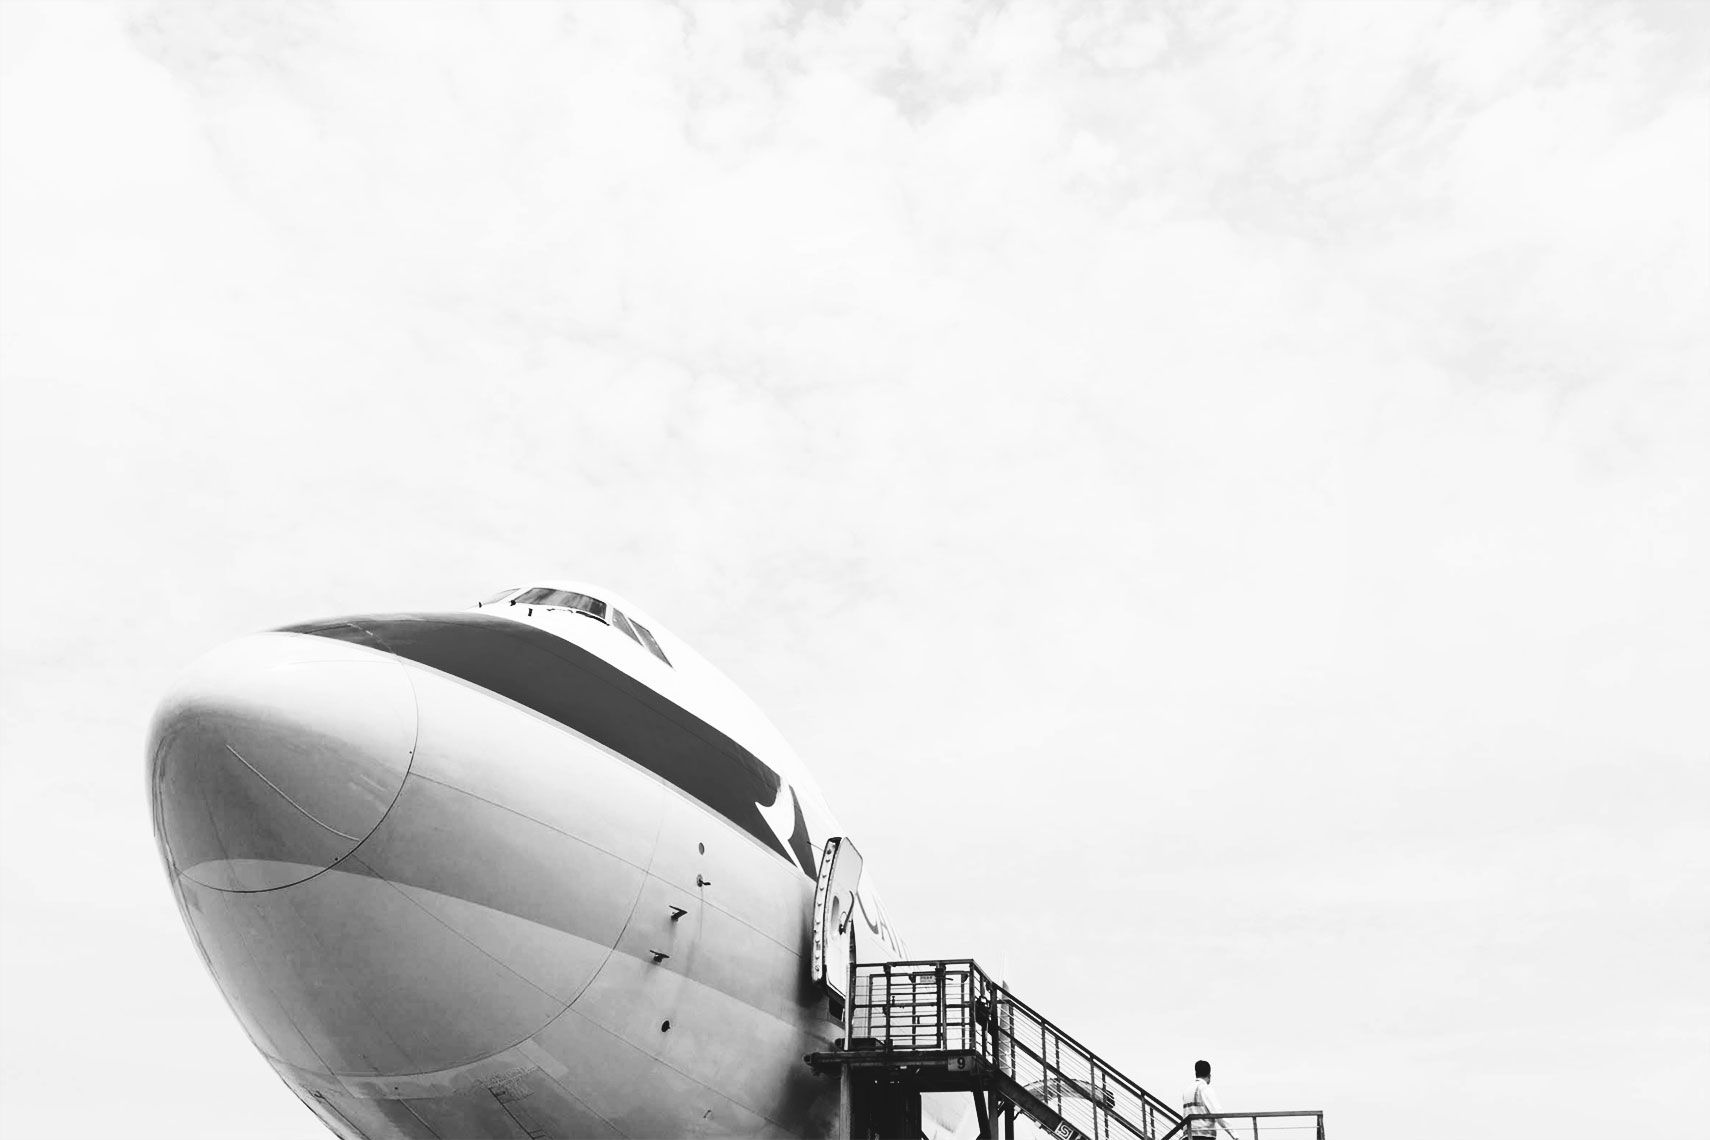 peggy-wong-photography_aviation_cathay-pacific-cargo_00311bw